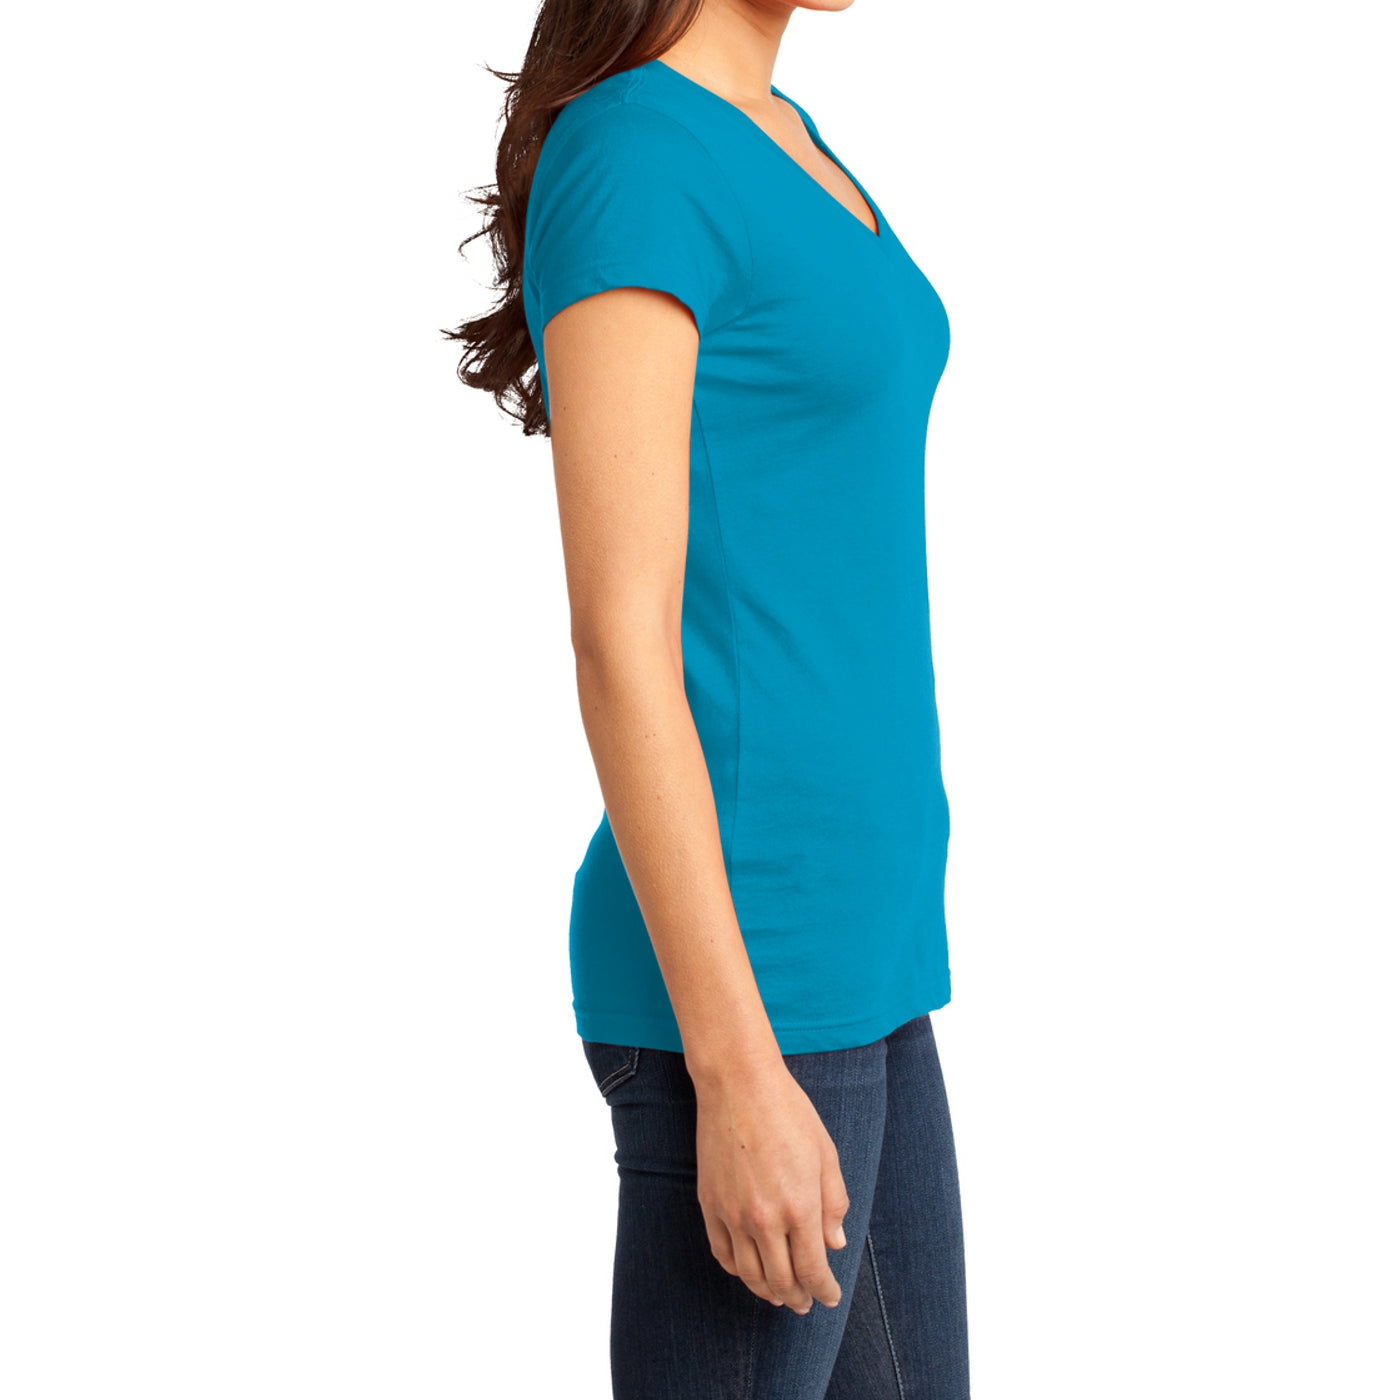 Women's Juniors Very Important Tee V-Neck - Light Turquoise